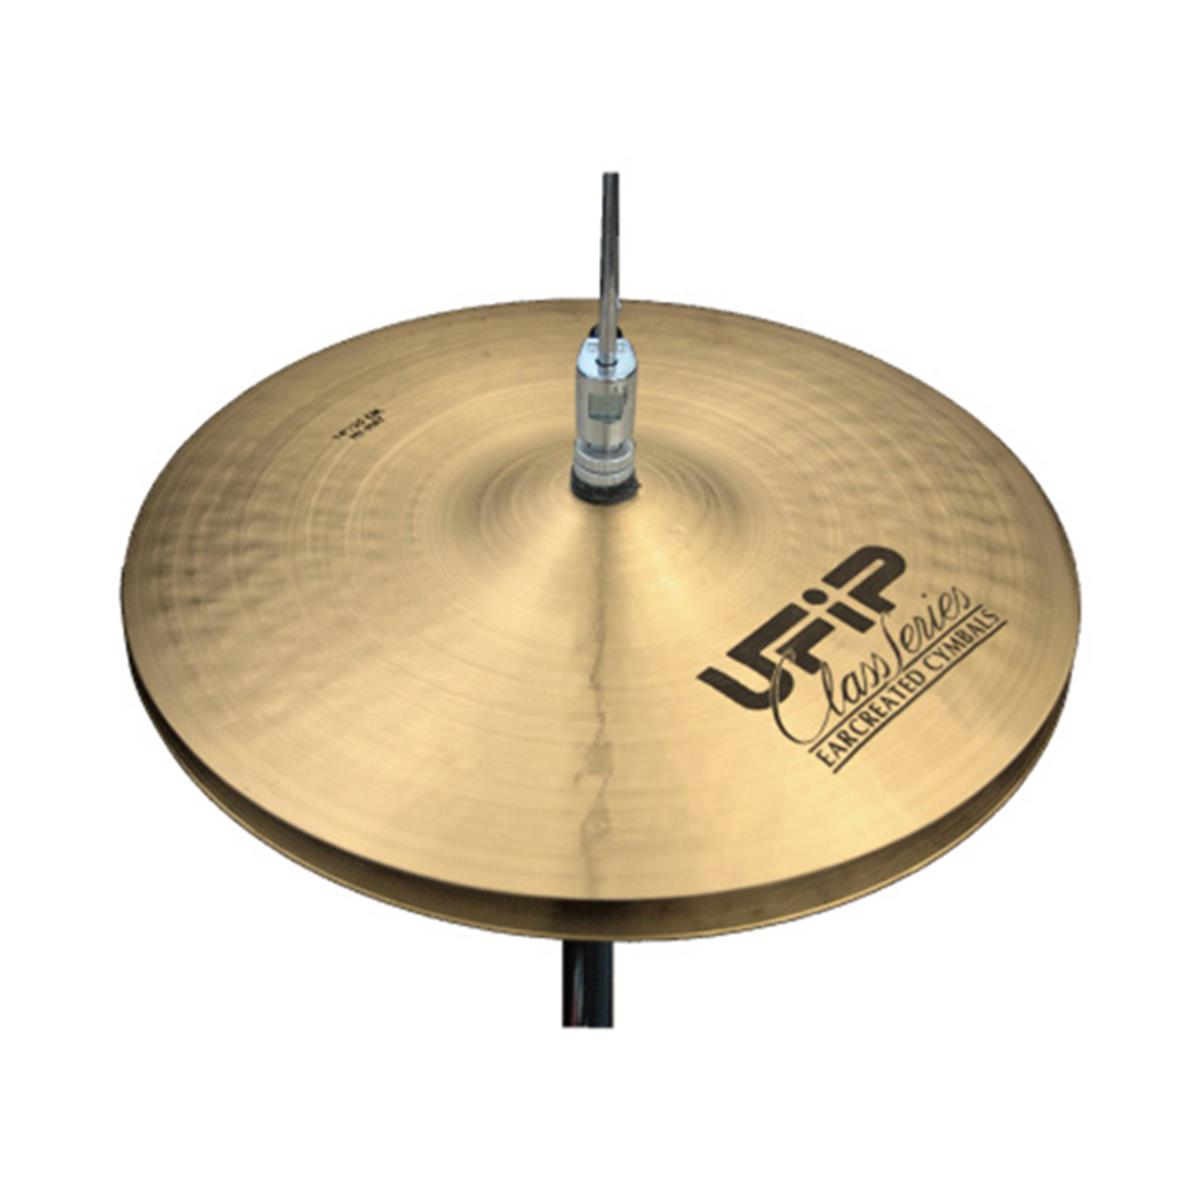 UFIP CS-13MHH - Class Series 13 Medium Hi Hat - Batterie / Percussioni Piatti - Hihat